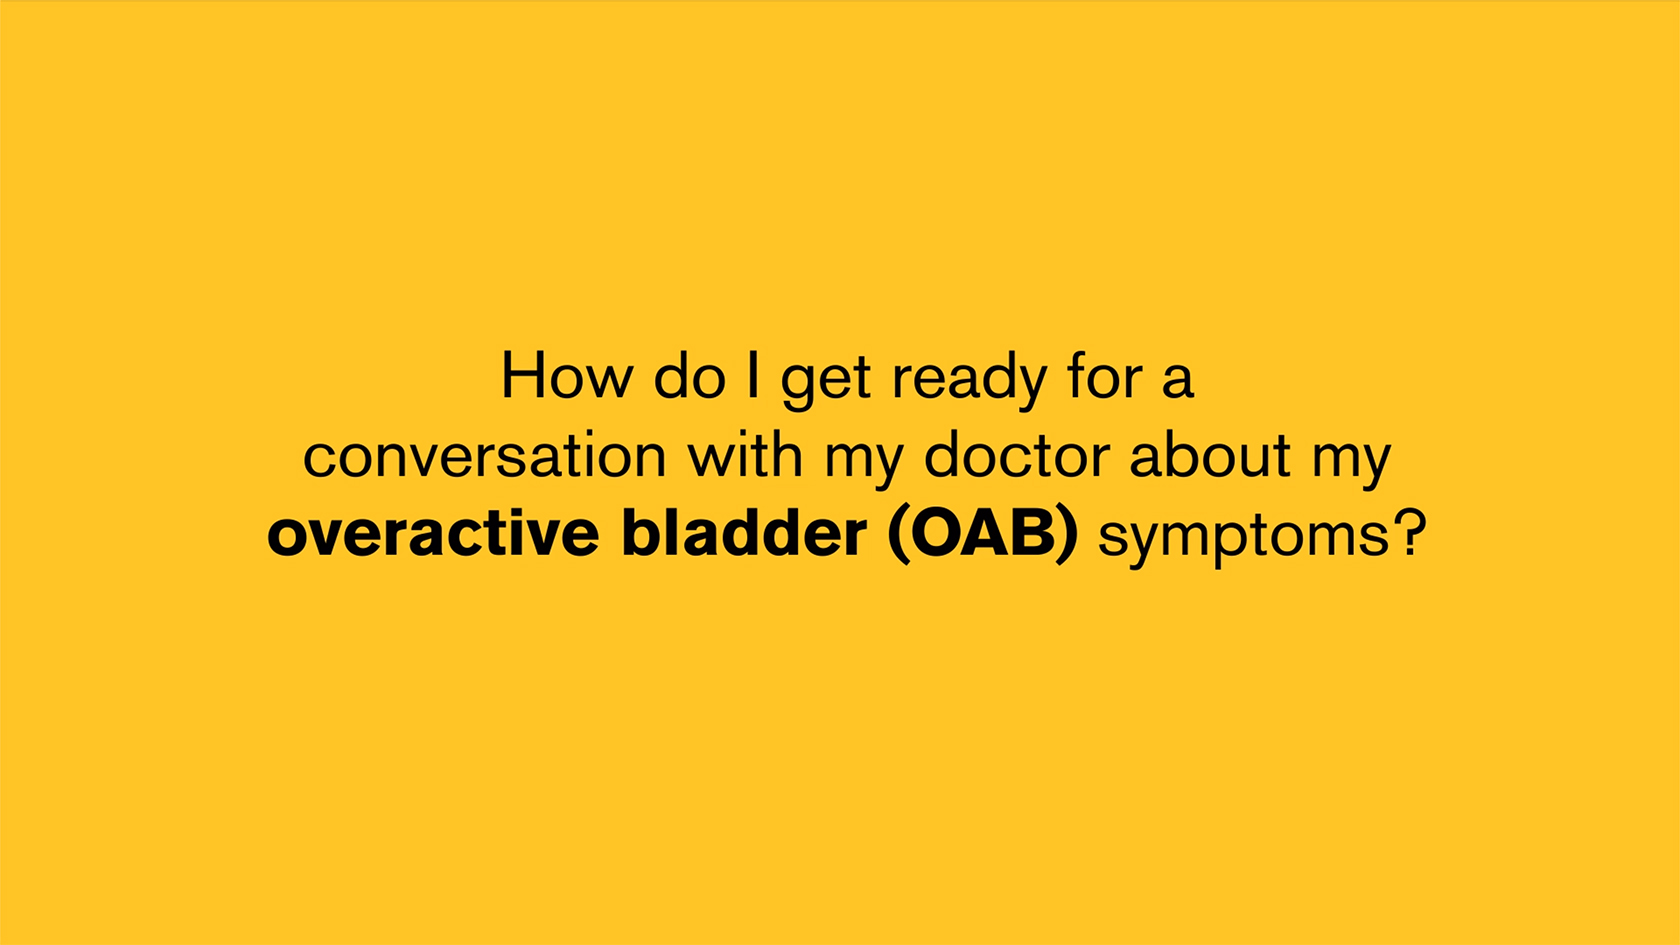 Start Conversation with Your Doctor